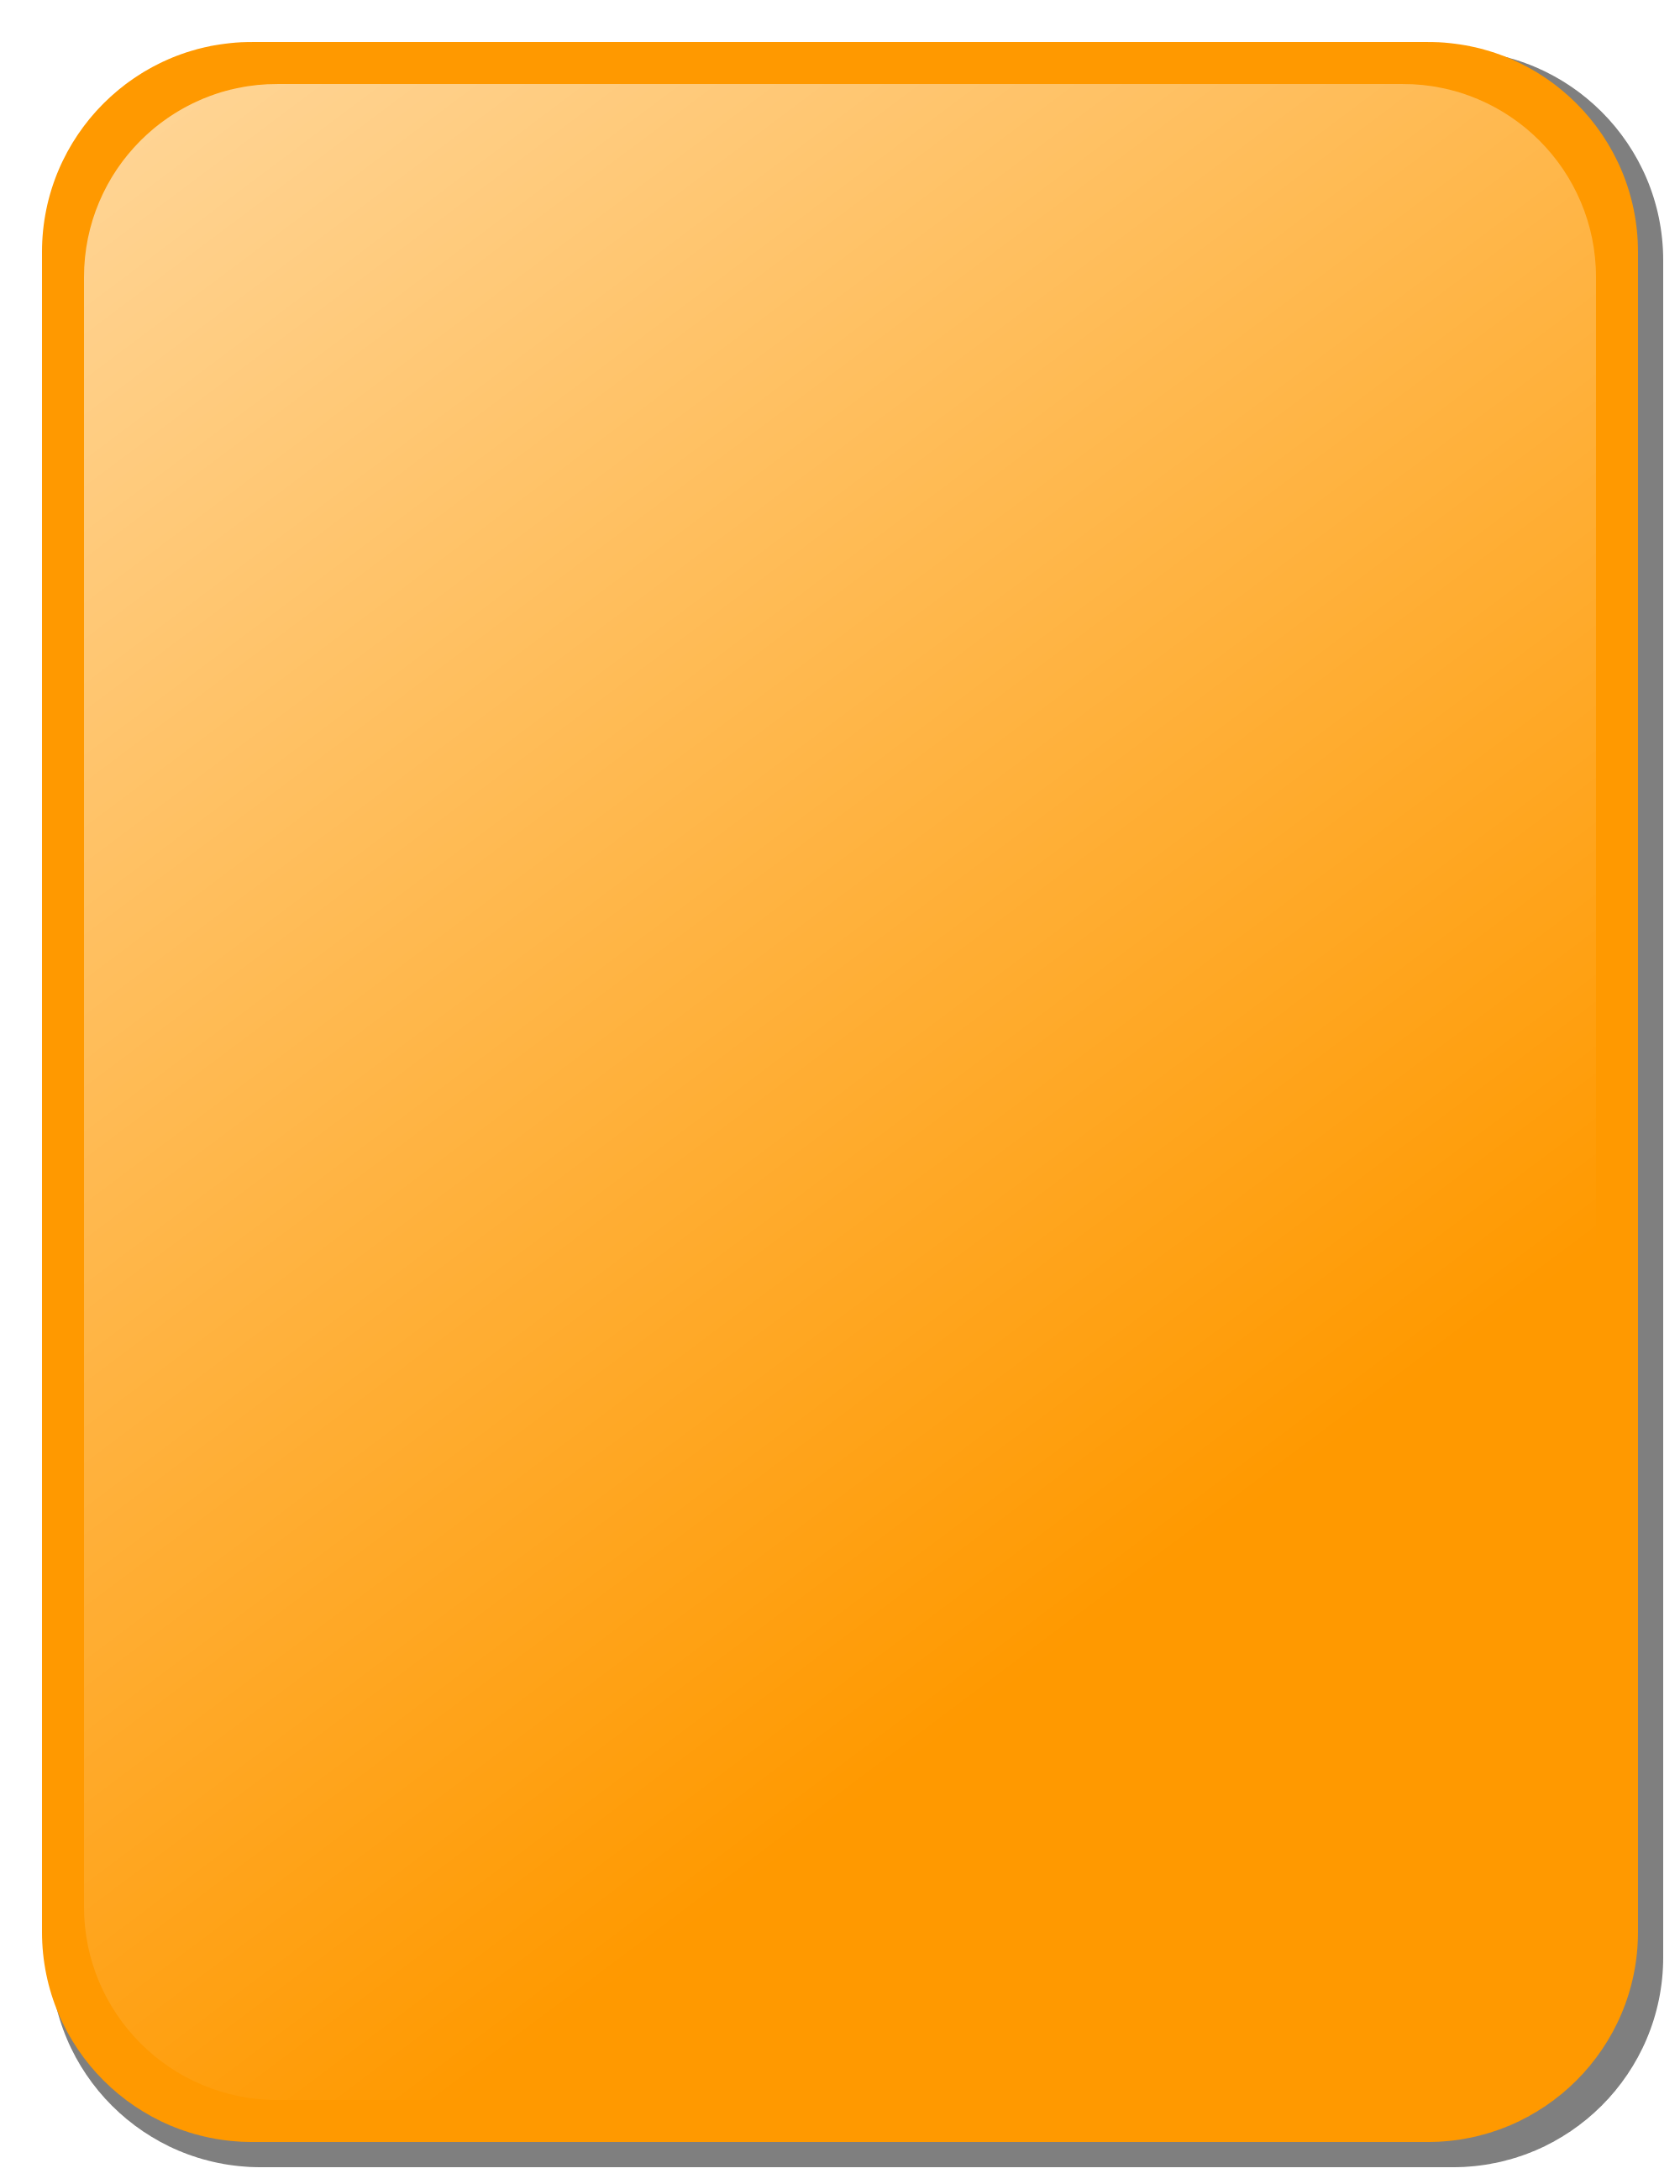 Square clipart orange. File card svg wikimedia